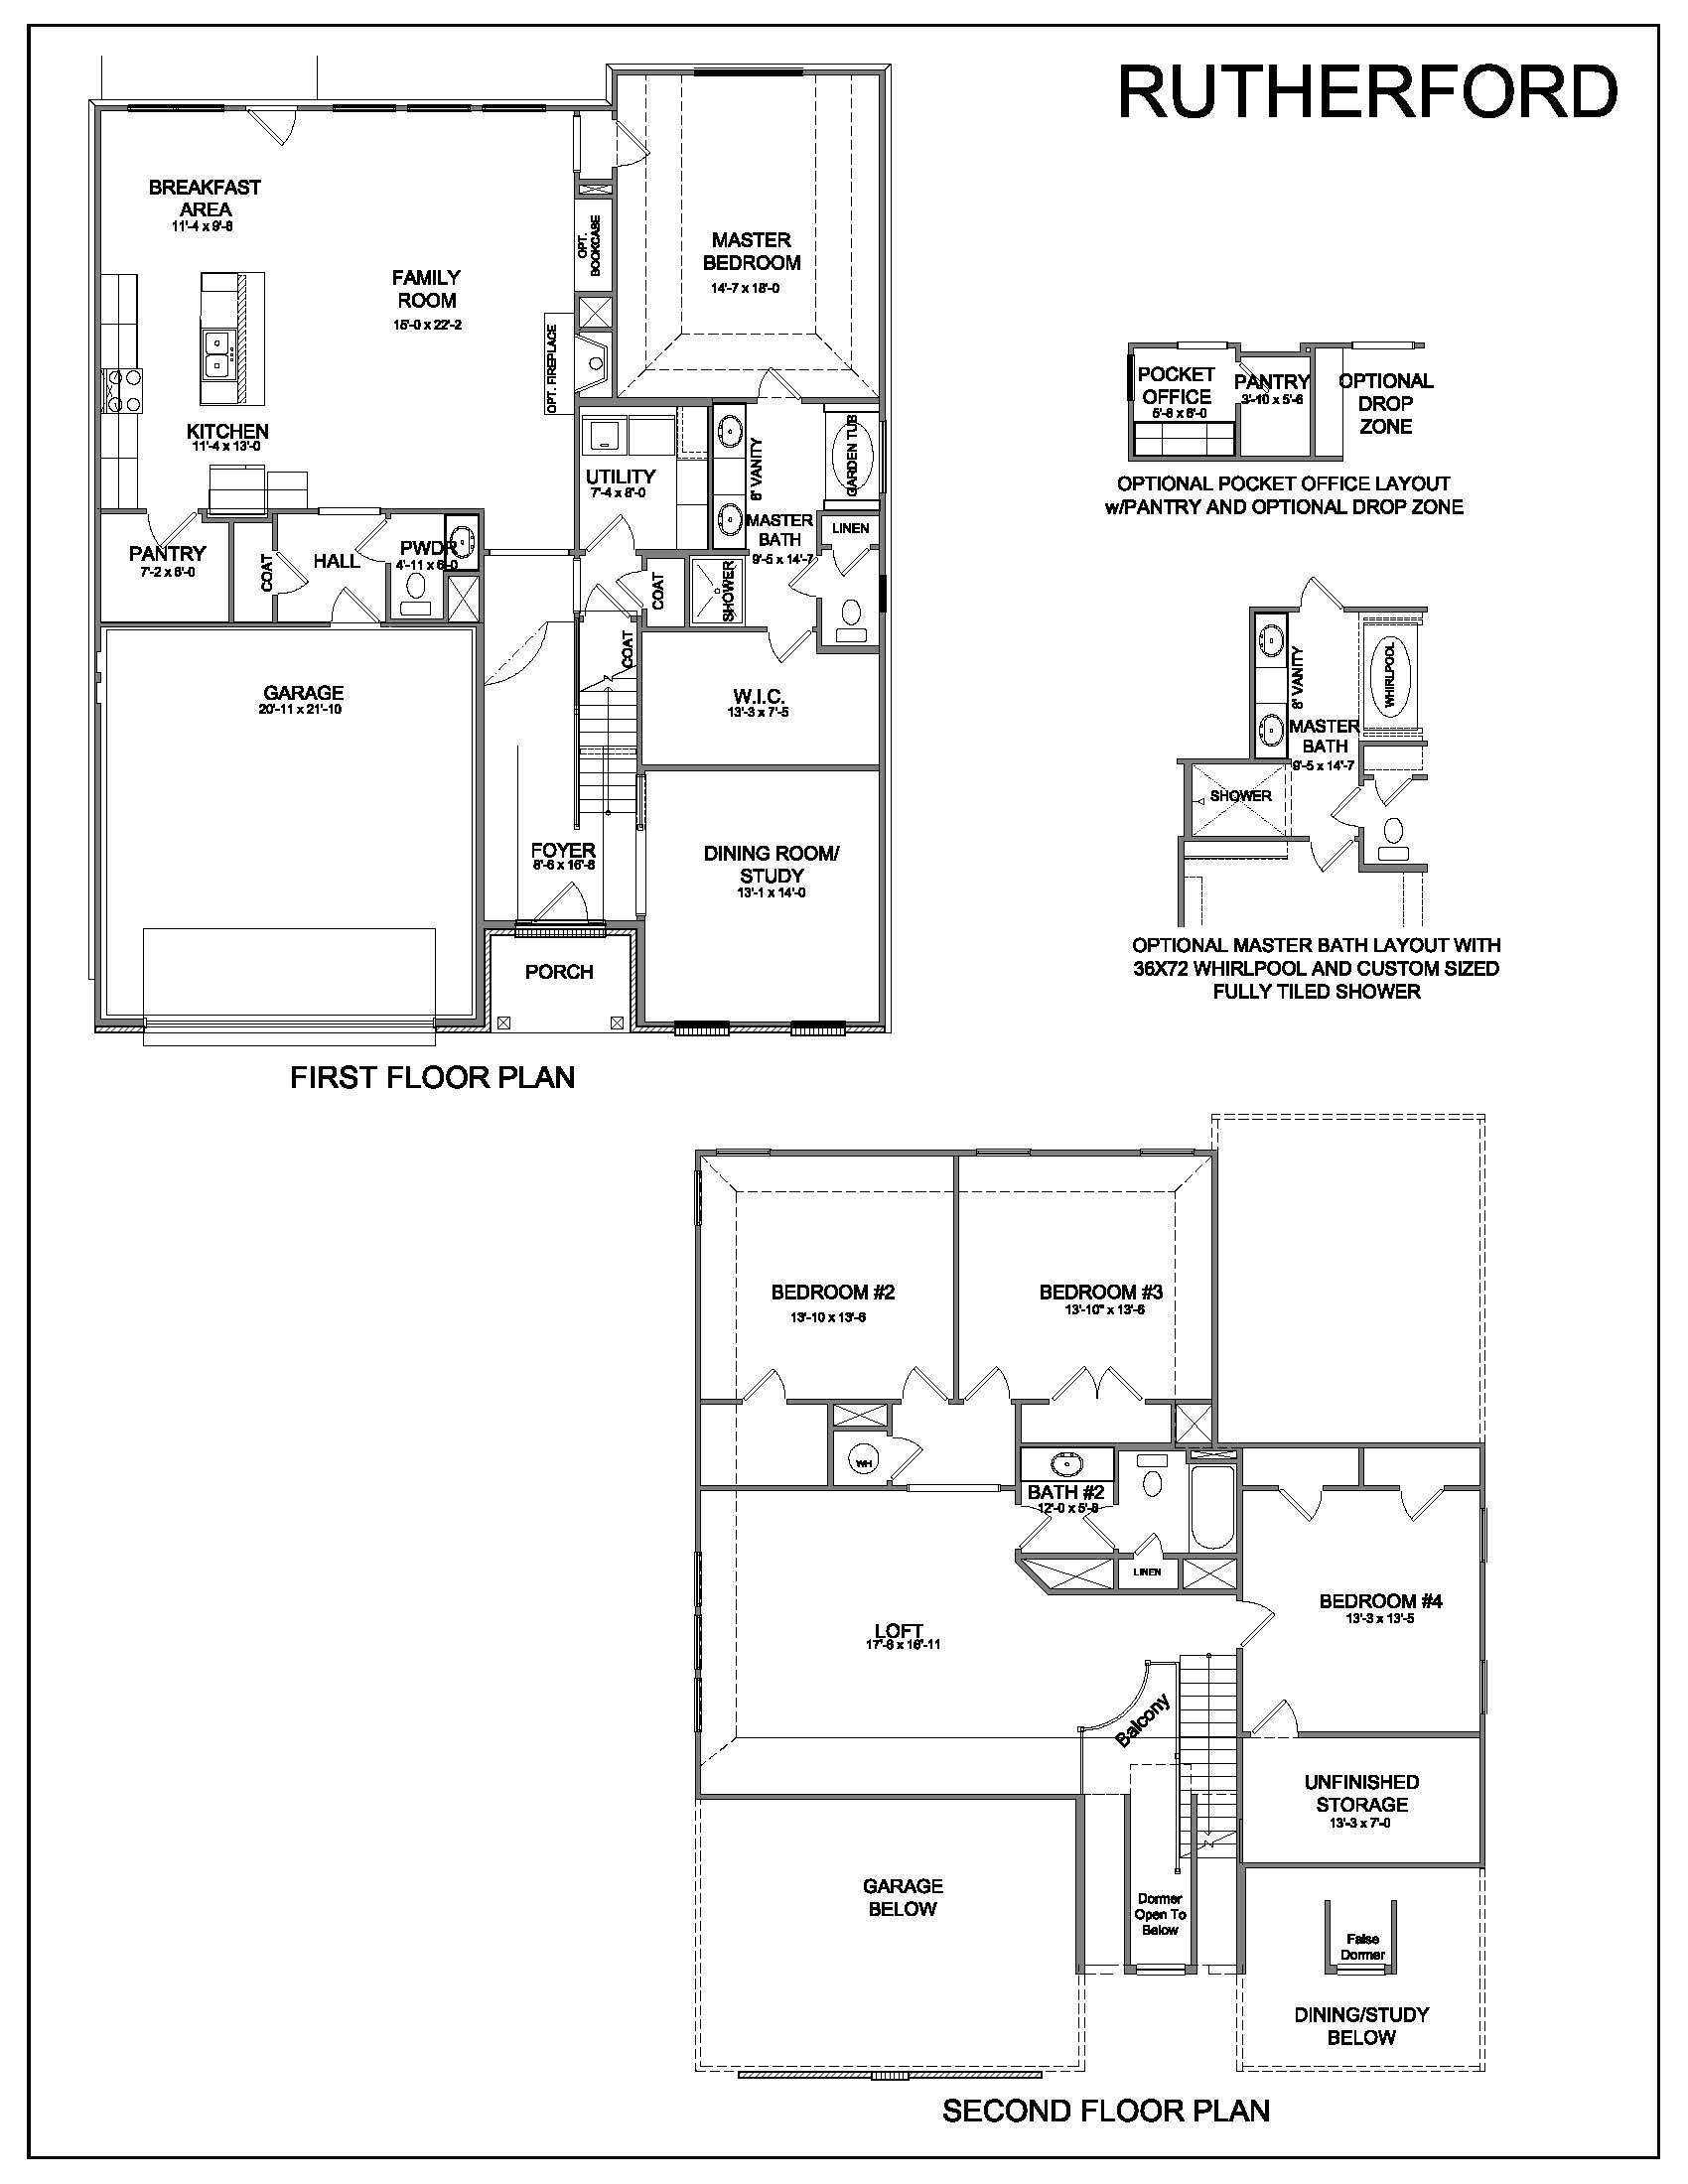 Floor plans rutherford for Rutherford house plan